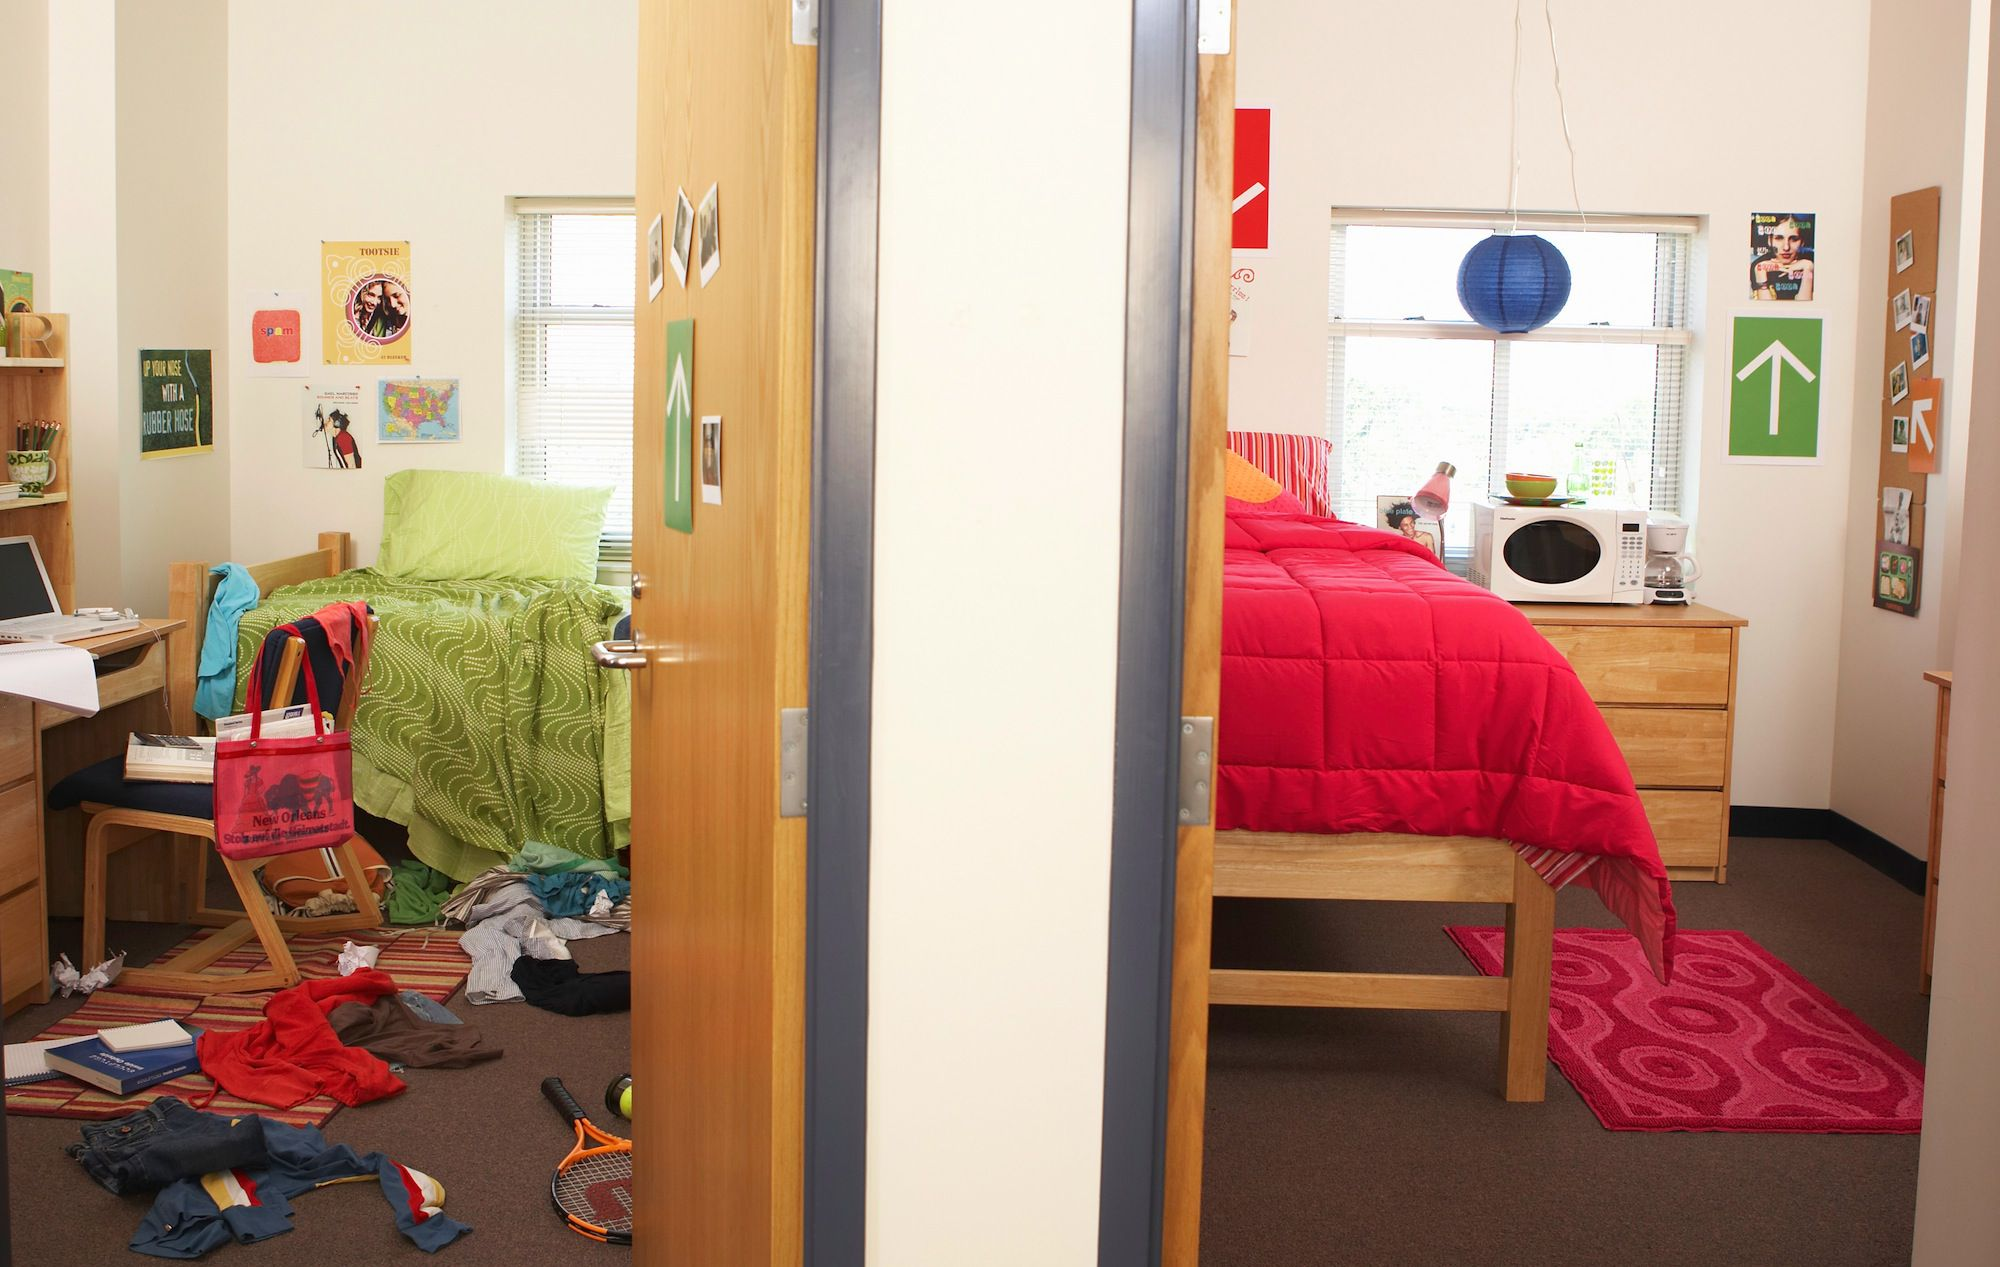 how to intensely clean a dorm room